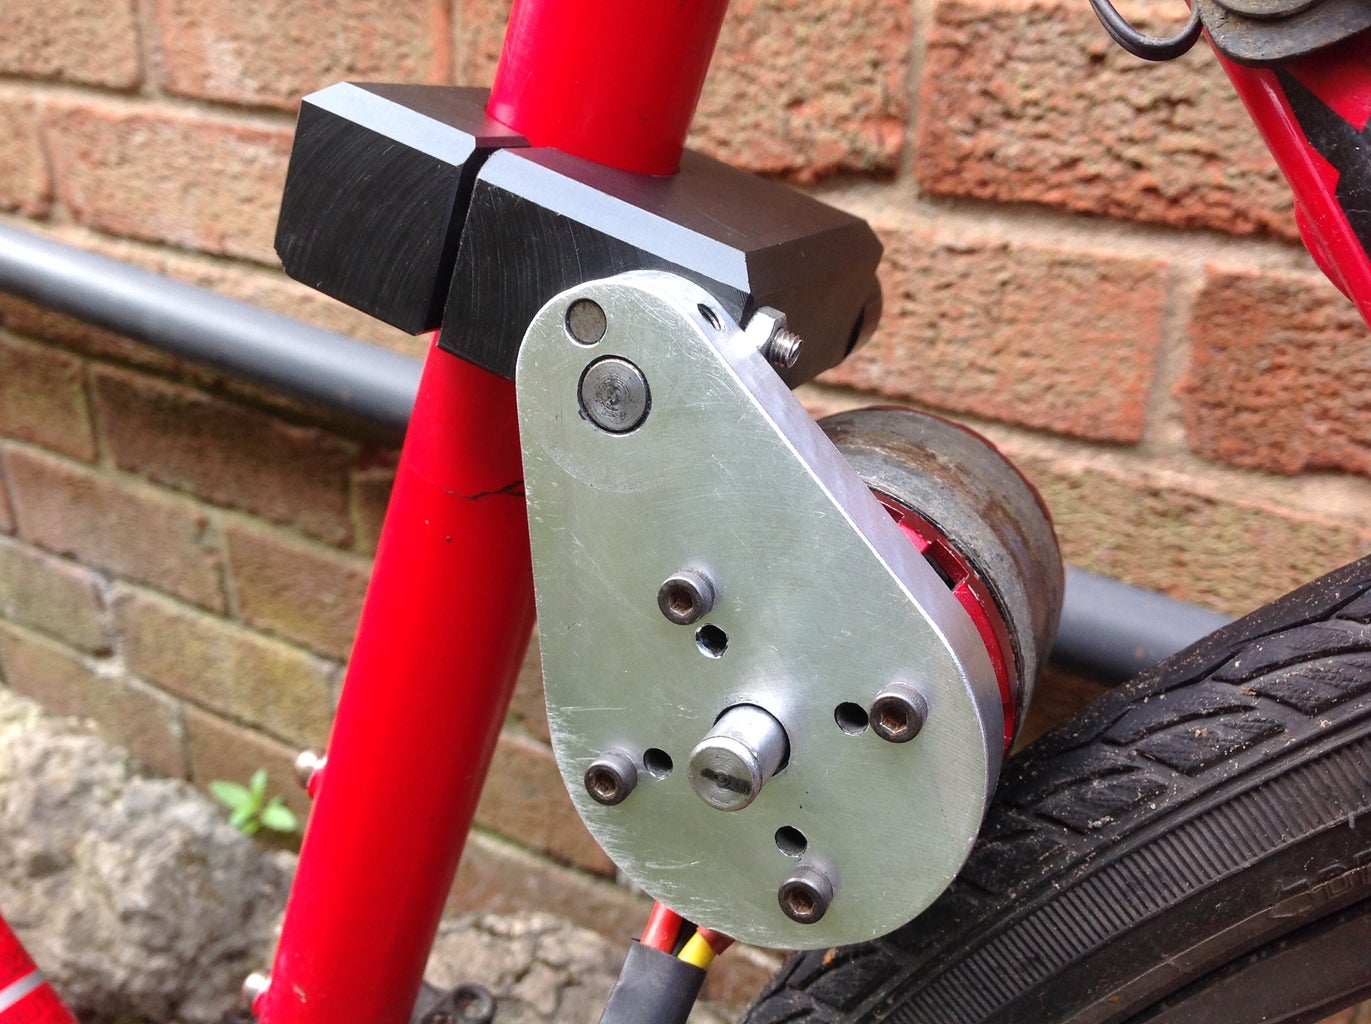 Friction Drive Build for Bikes